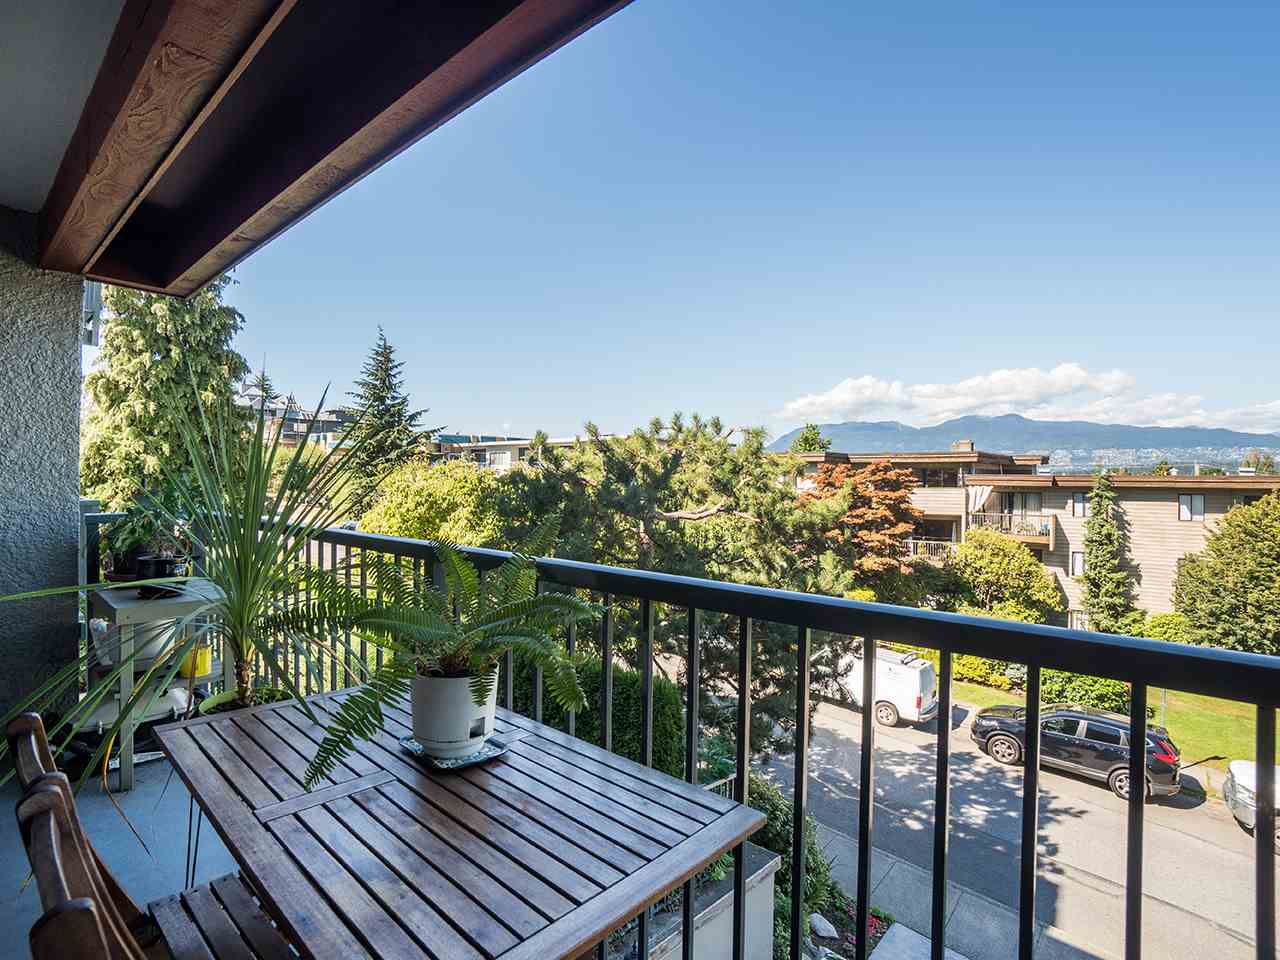 Welcome to Arbutus Place - perfectly located North of 4th ave! This fabulous 1 bedroom unit offers a very efficient open floorplan with fantastic views of the city and mountains from its large balcony. This is truly Kits living at its finest and your chance to own in this sought after, worry-free building! Building upgrades include new balconies/railings, newer roof, lobby, elevator cab, parking garage waterproof membrane, partial rainscreen, exterior paint and more. Building also offers common rooftop patios with panoramic views of English bay, mountains and city. Secure bike room, pets/rentals allowed w/restrictions. BONUS: 1 parking and storage included! *SNEAK PEEK; THUR SEPT. 7: 5-7PM / OPEN HOUSES; SAT&SUN SEPT. 9&10